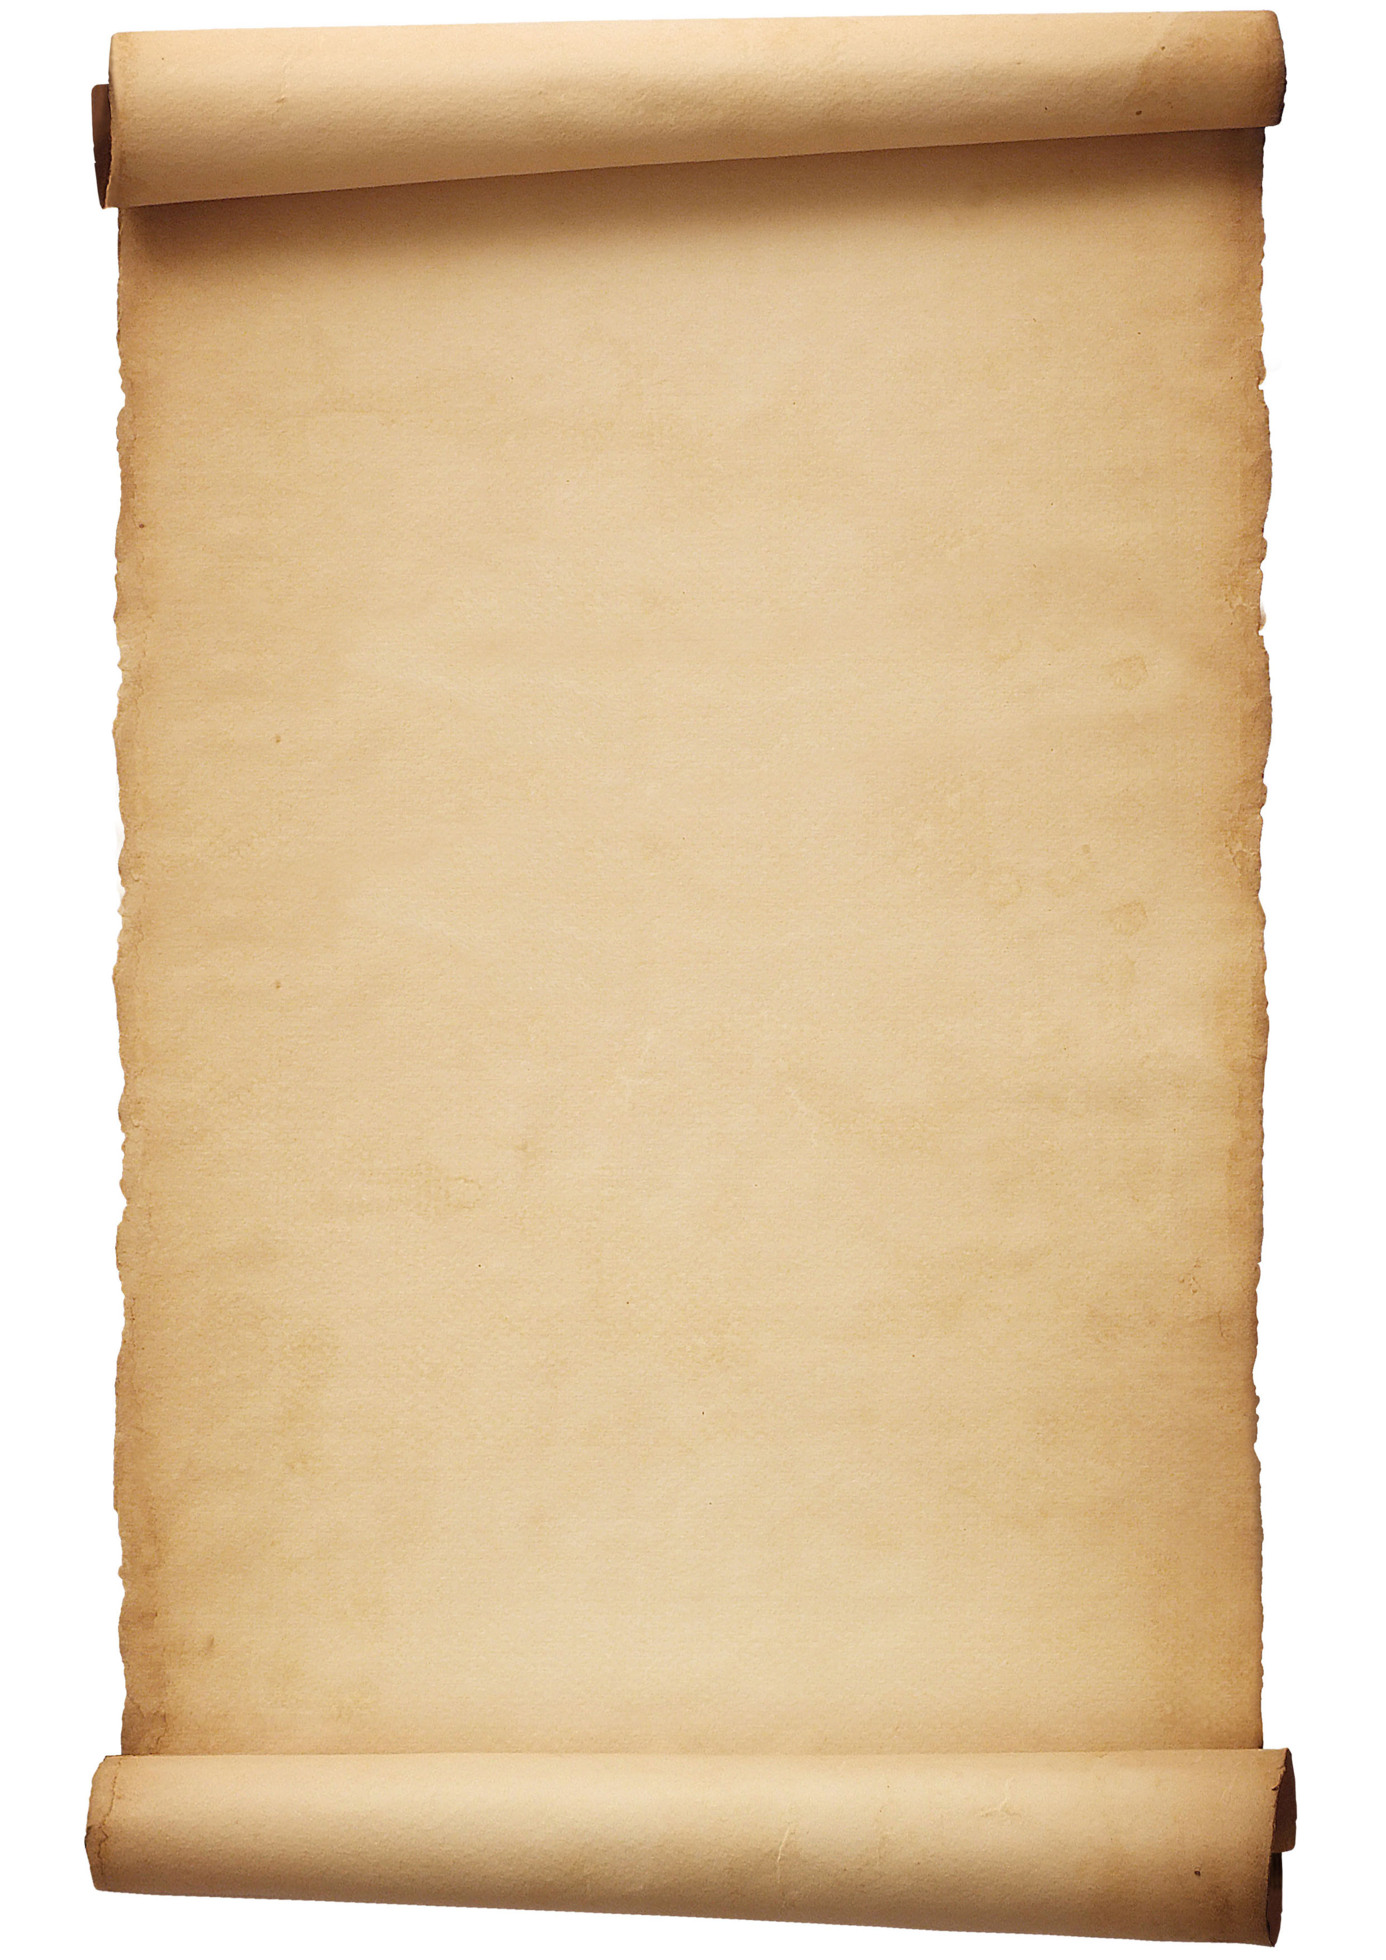 Blank Scroll Blank Template Imgflip